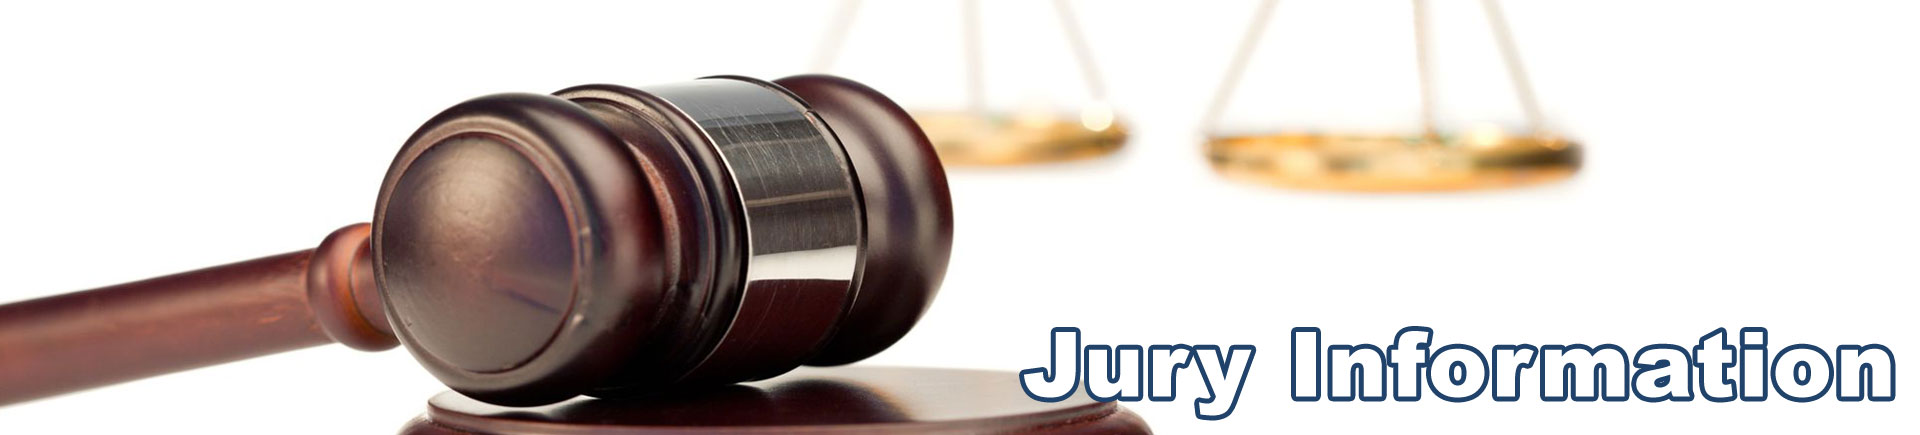 Lincoln County District Court Jury Information